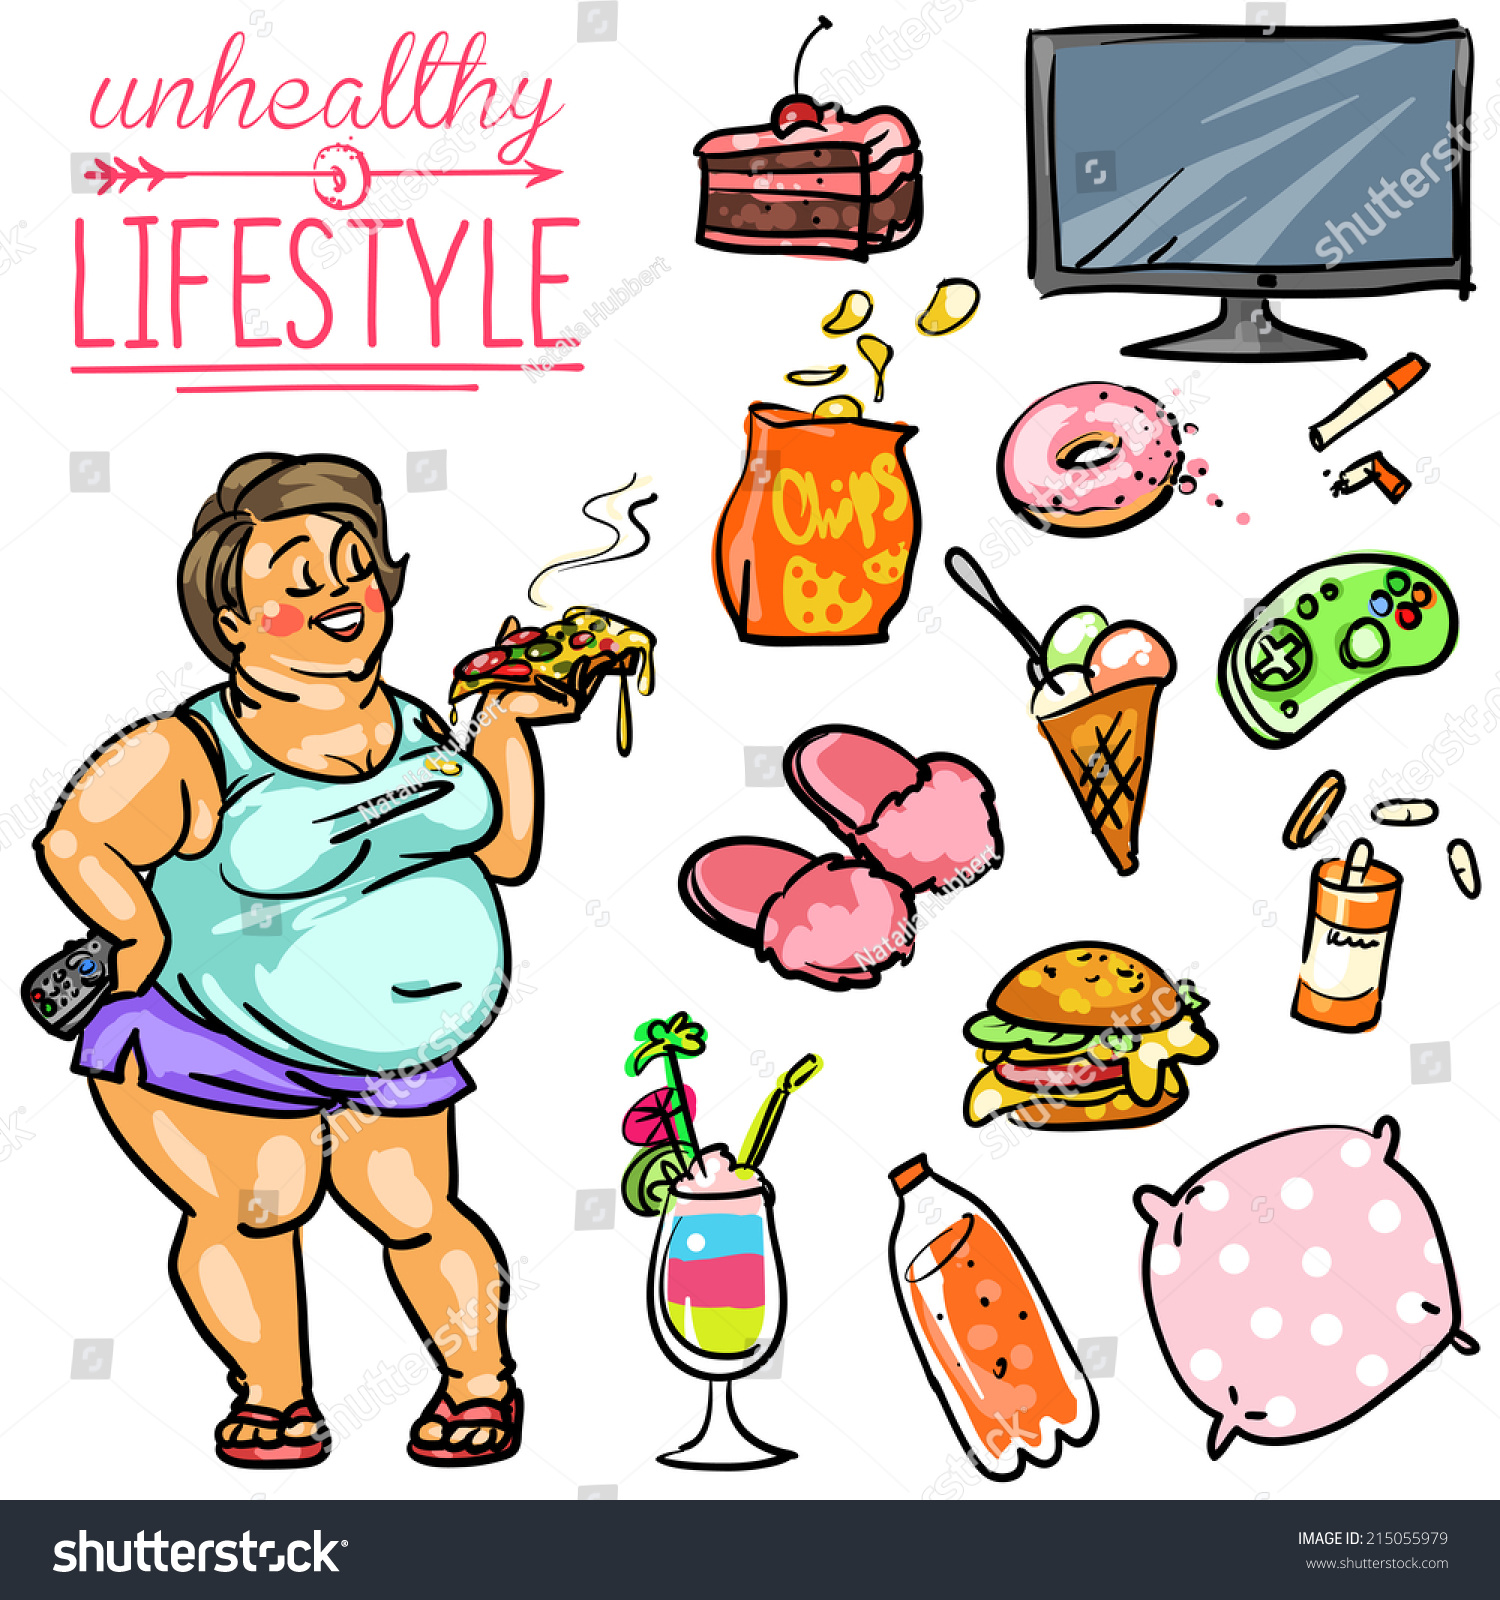 Amerikaner Kuchen Englisch Unhealthy Lifestyle Hand Drawn Cartoon Collection Stock